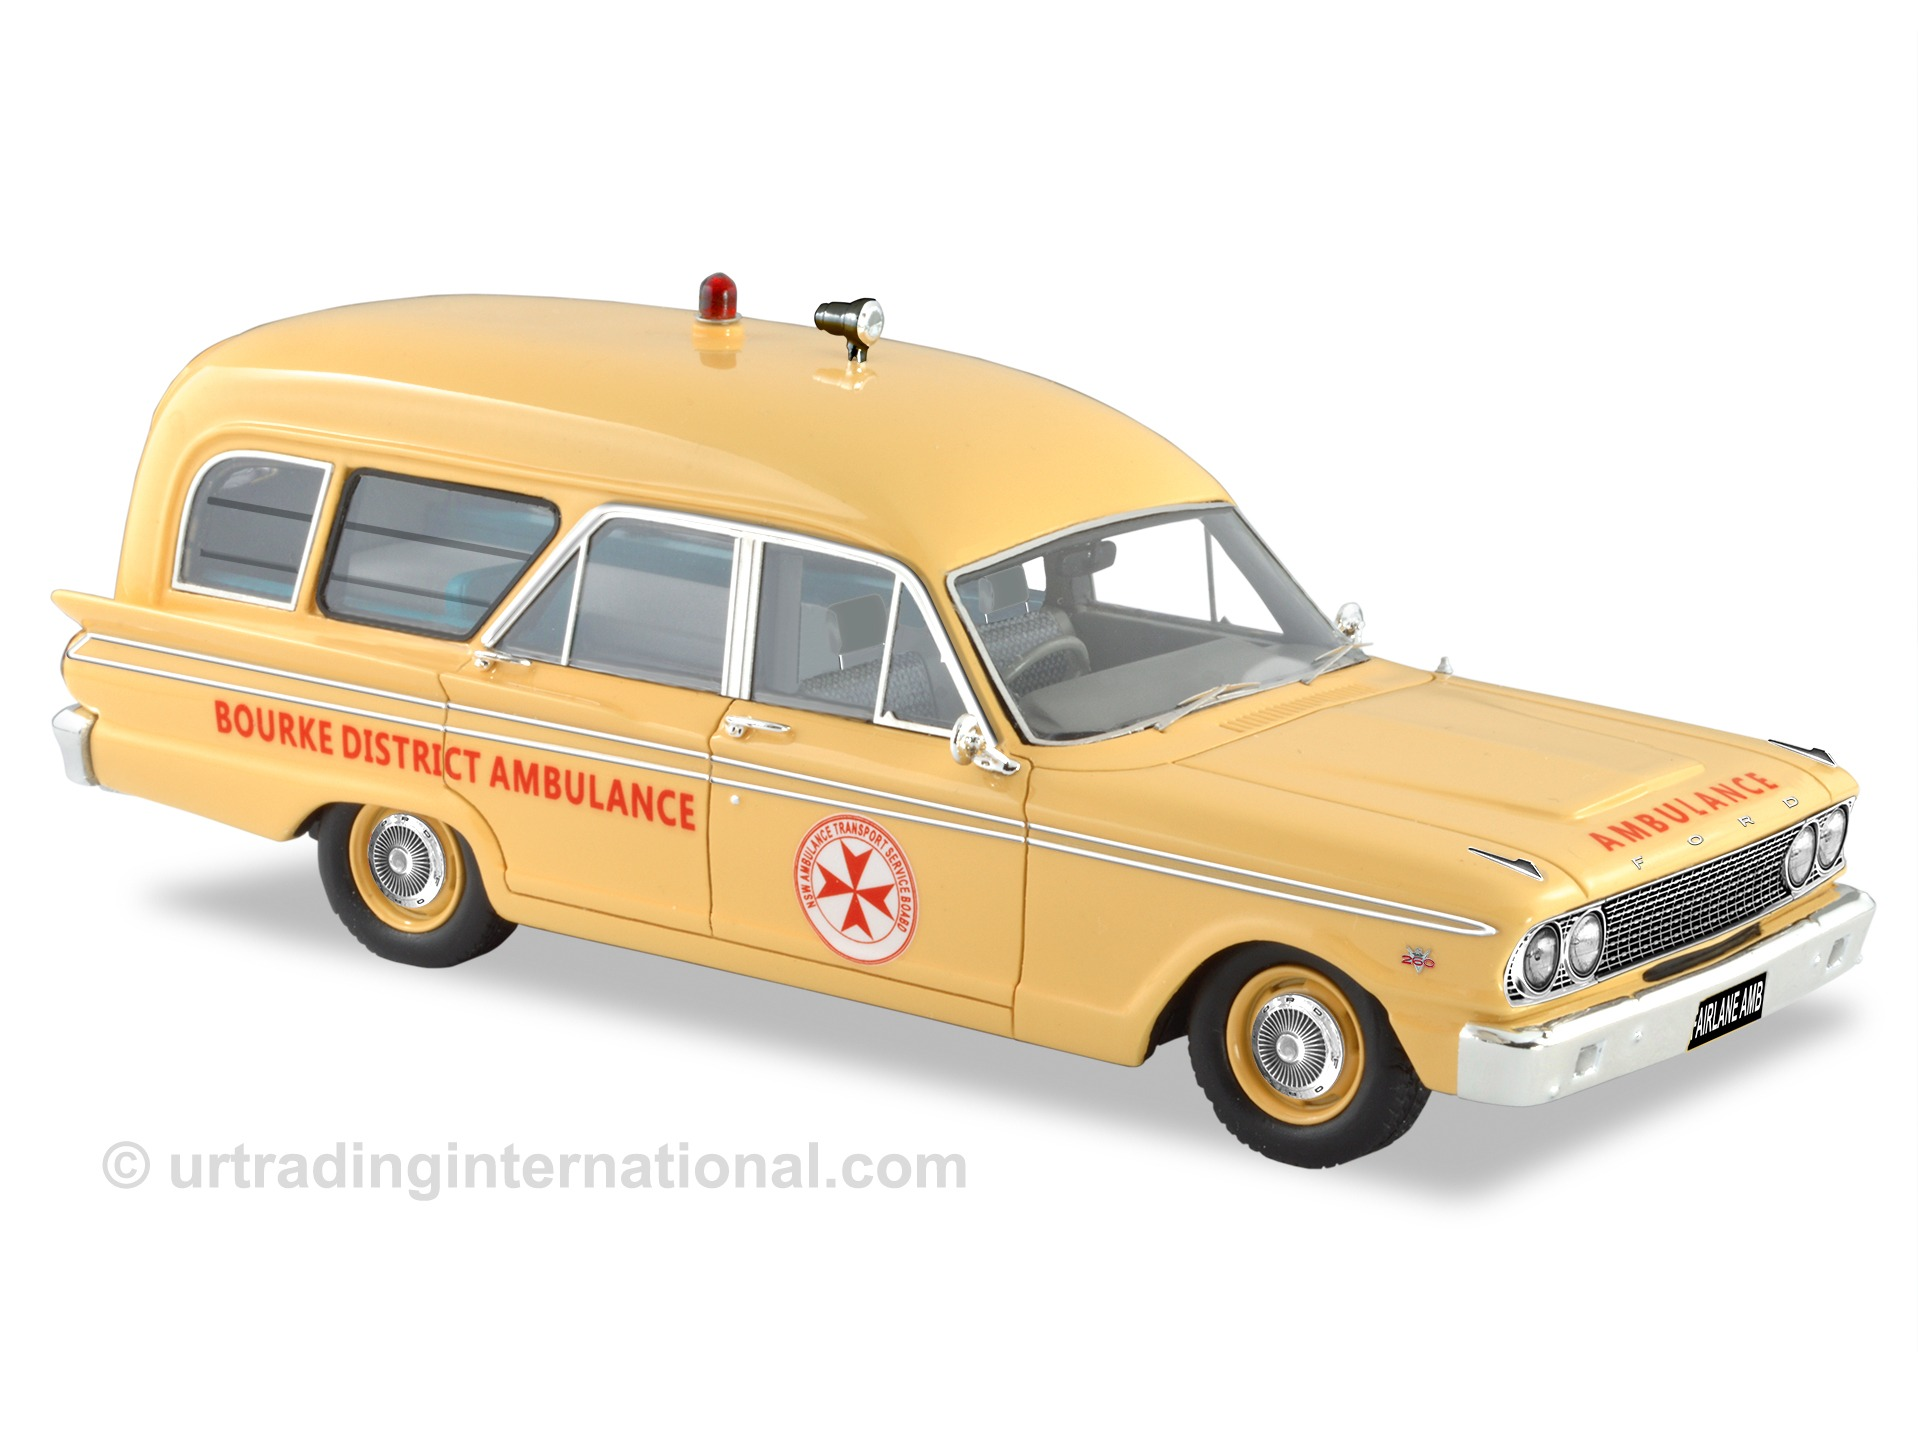 1963 Ford Fairlane 500 Ambulance – Bourke District